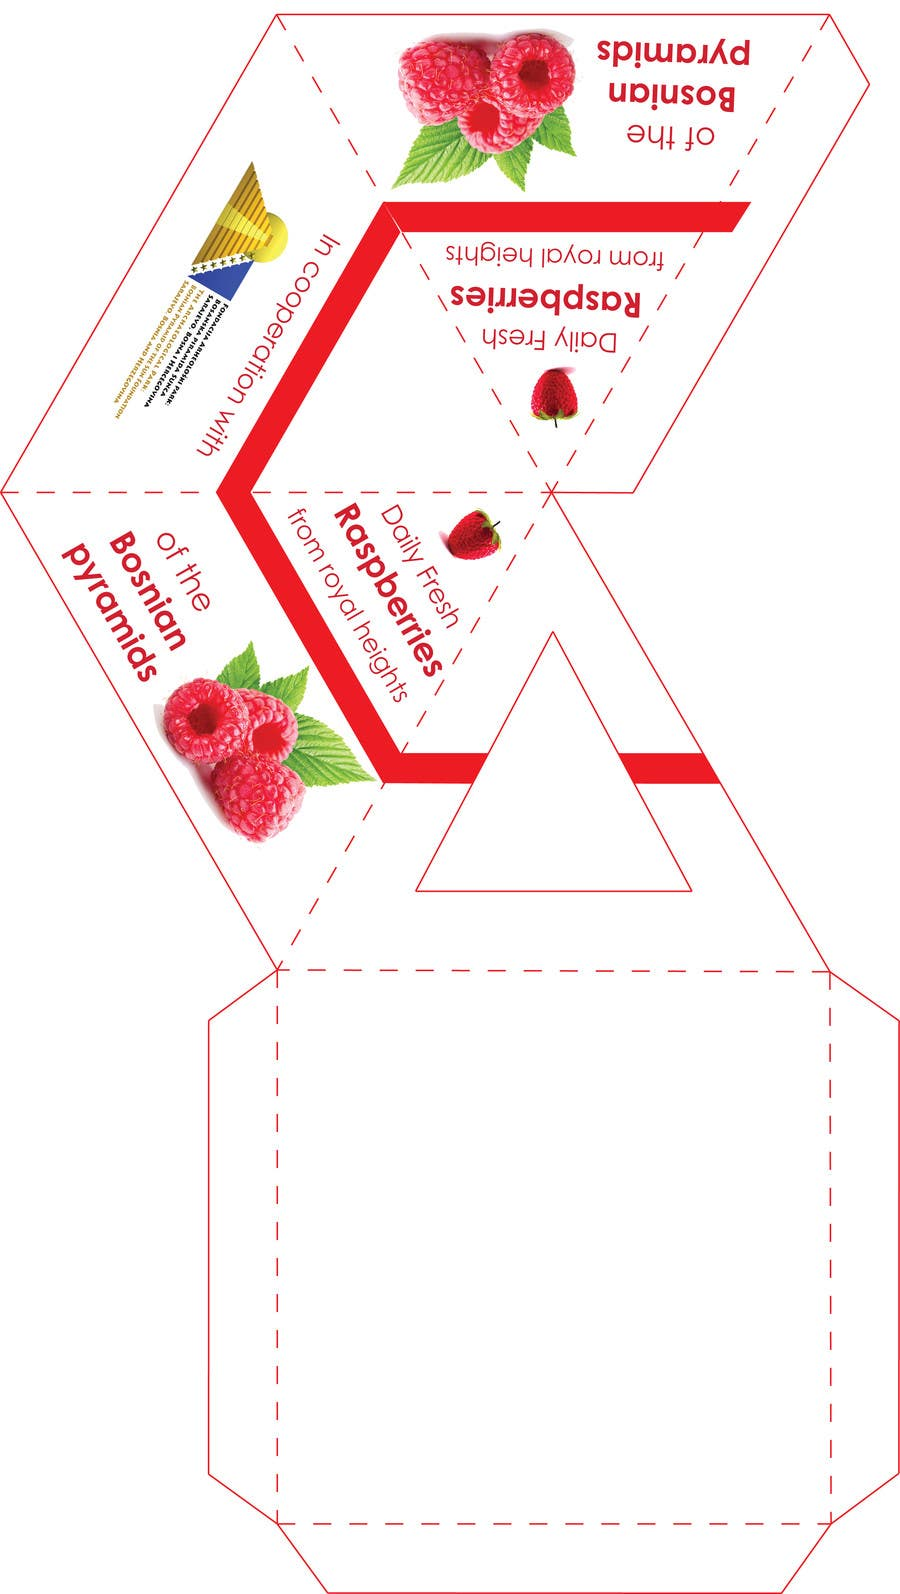 Proposition n°7 du concours Pyramid packaging - print design